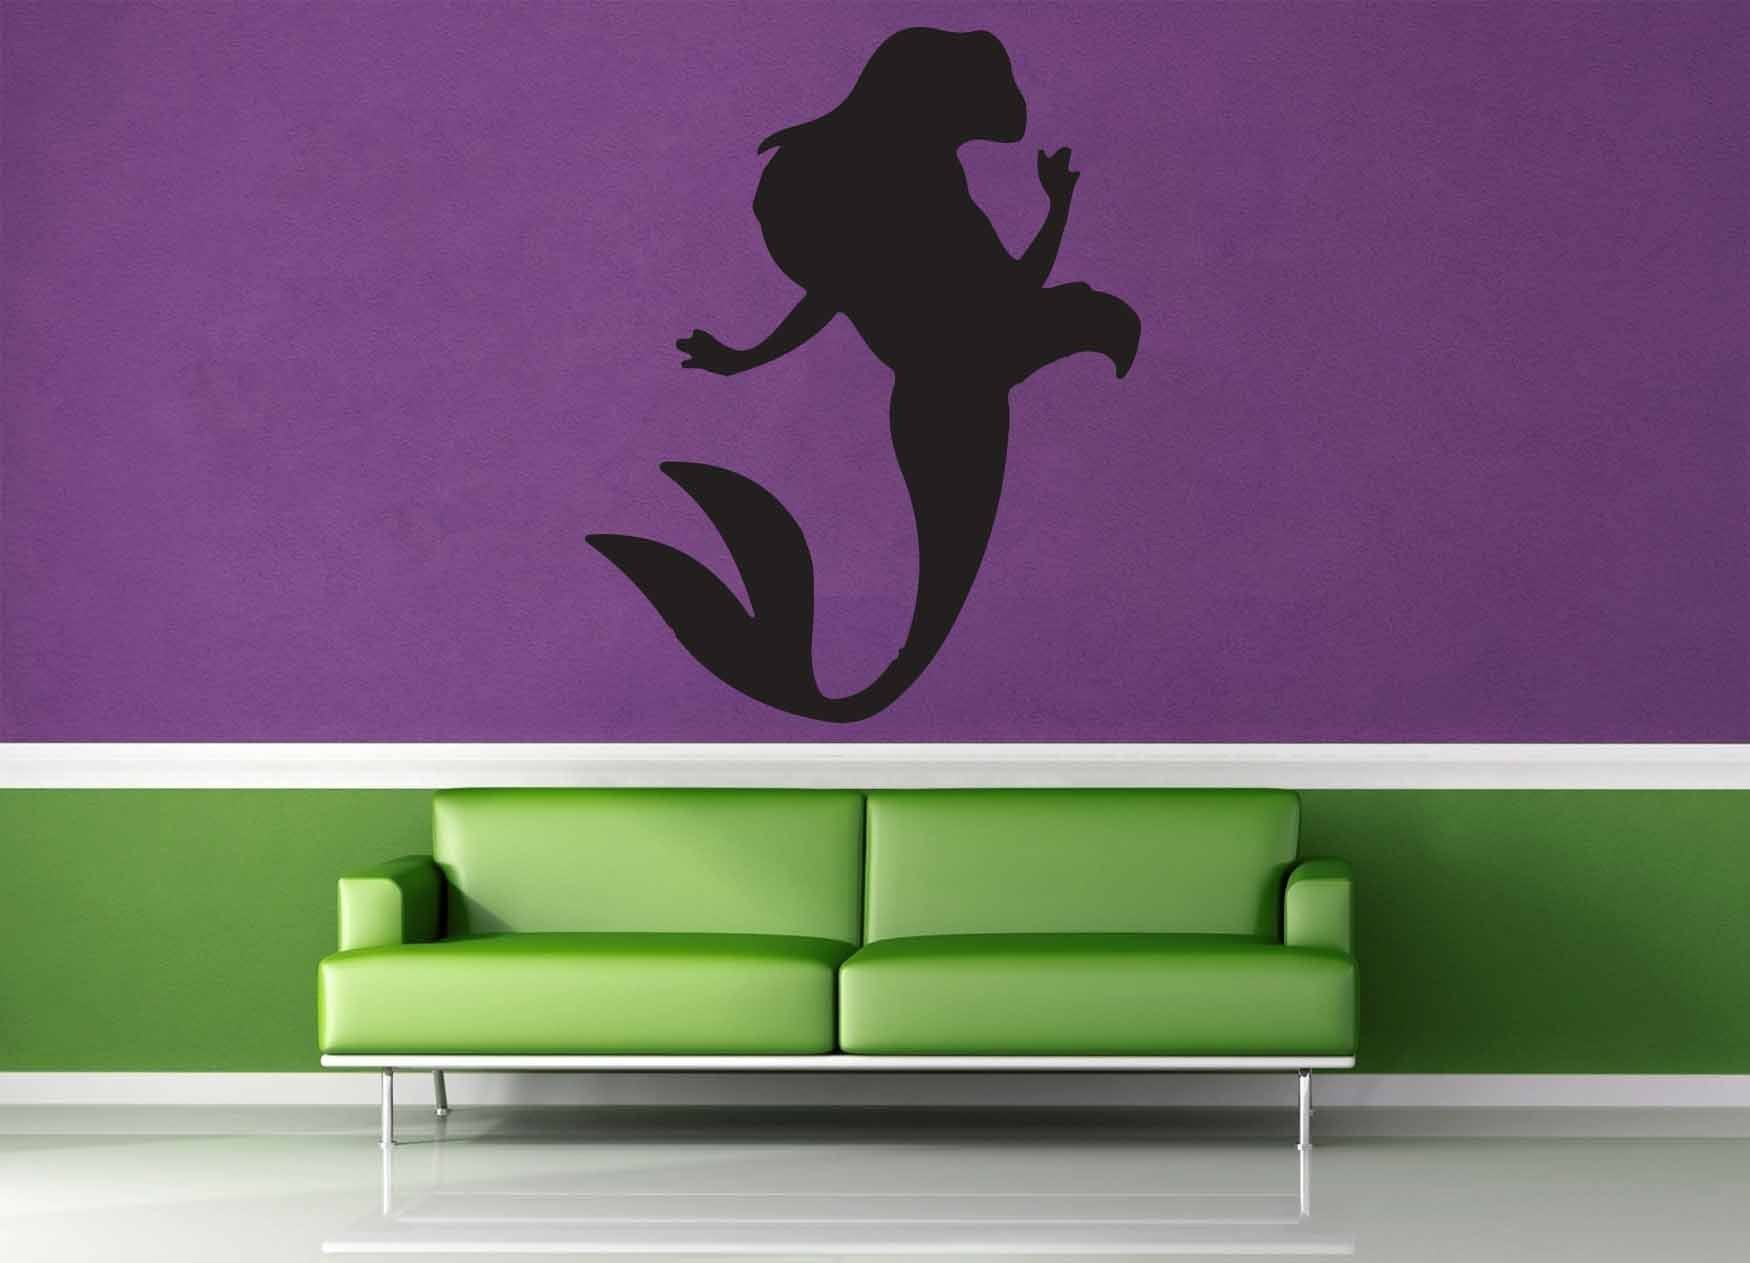 Mermaid Silhouette - Wall Decal - No 2